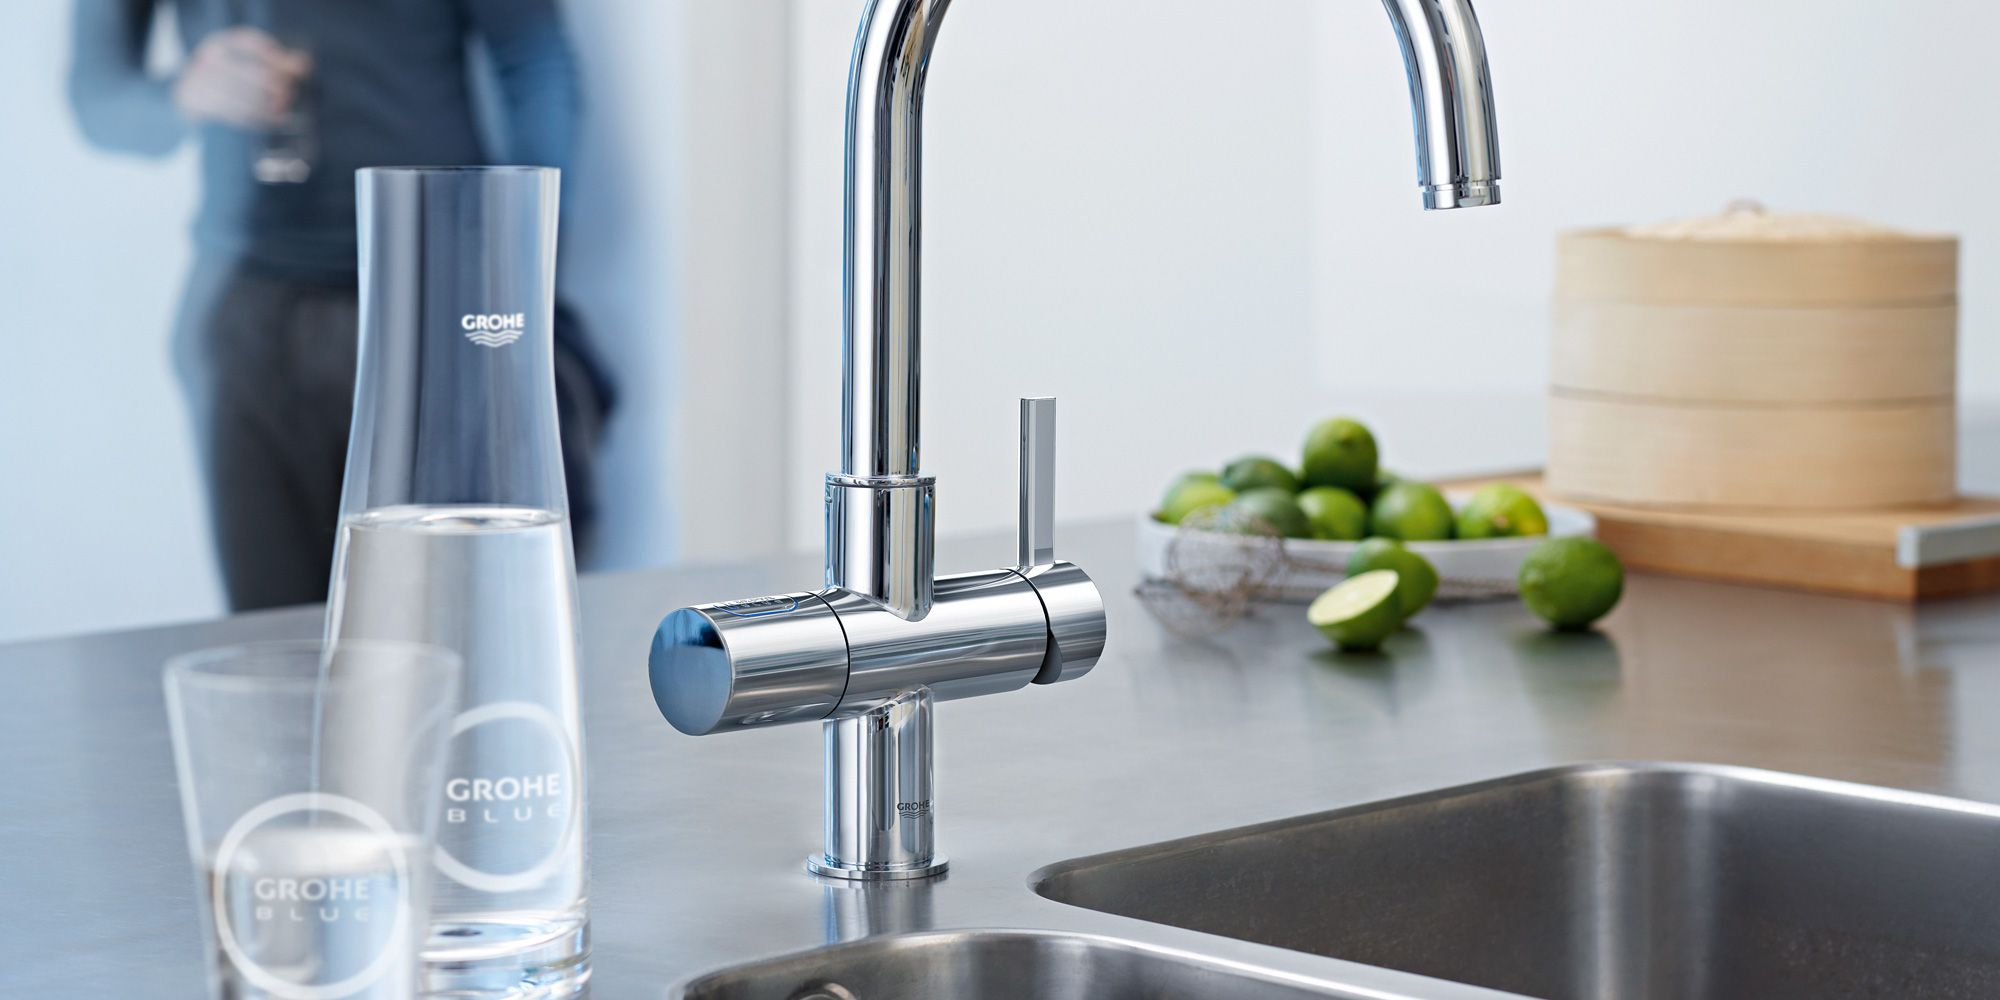 grohe large3